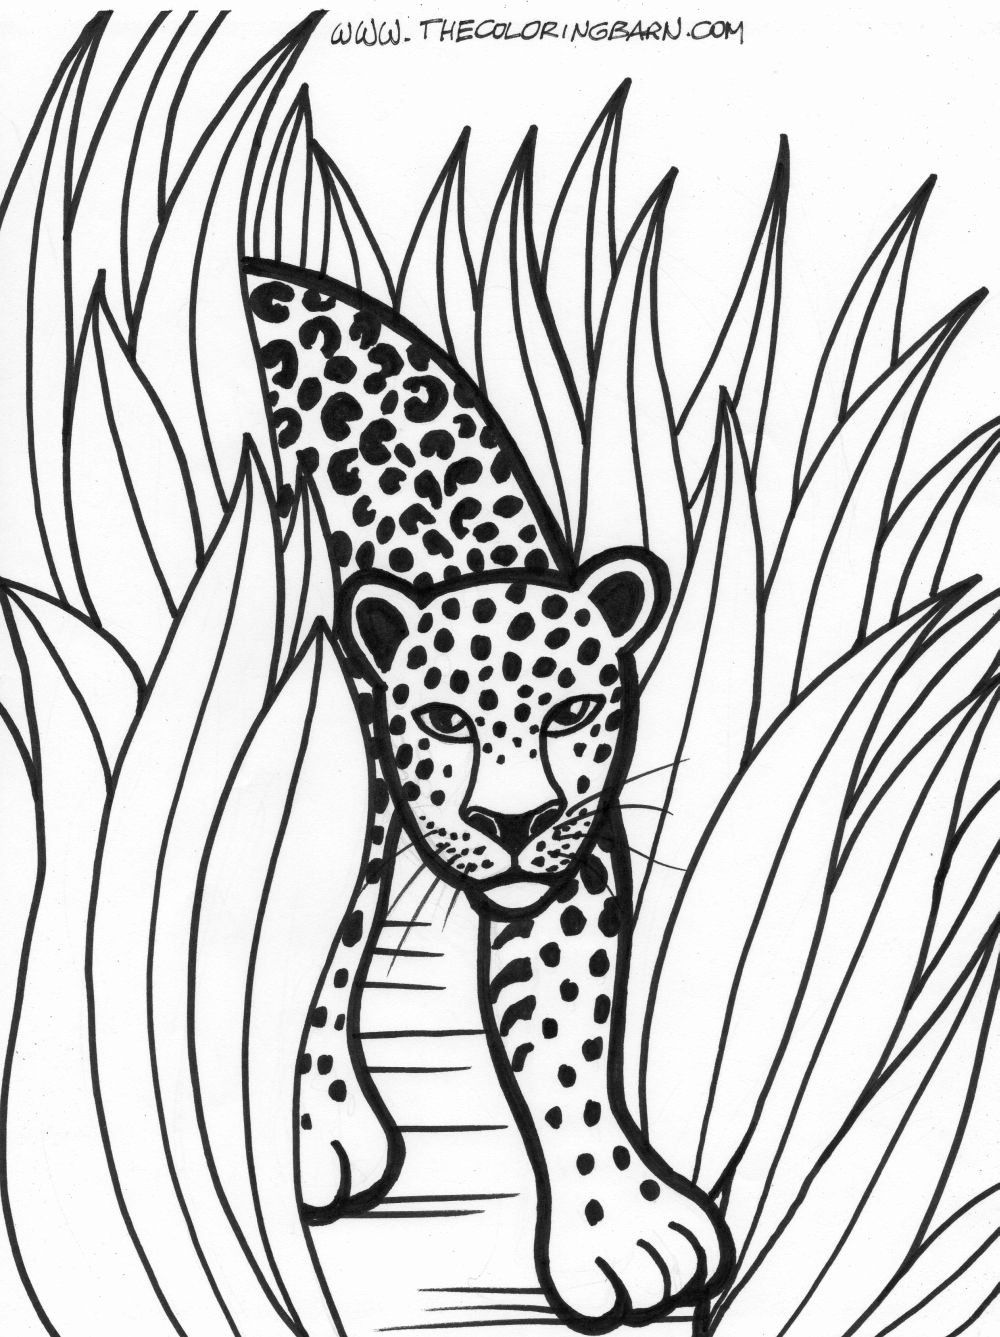 Rainforest Coloring Pages Printable Awesome Rainforest Coloring Pages Gambar